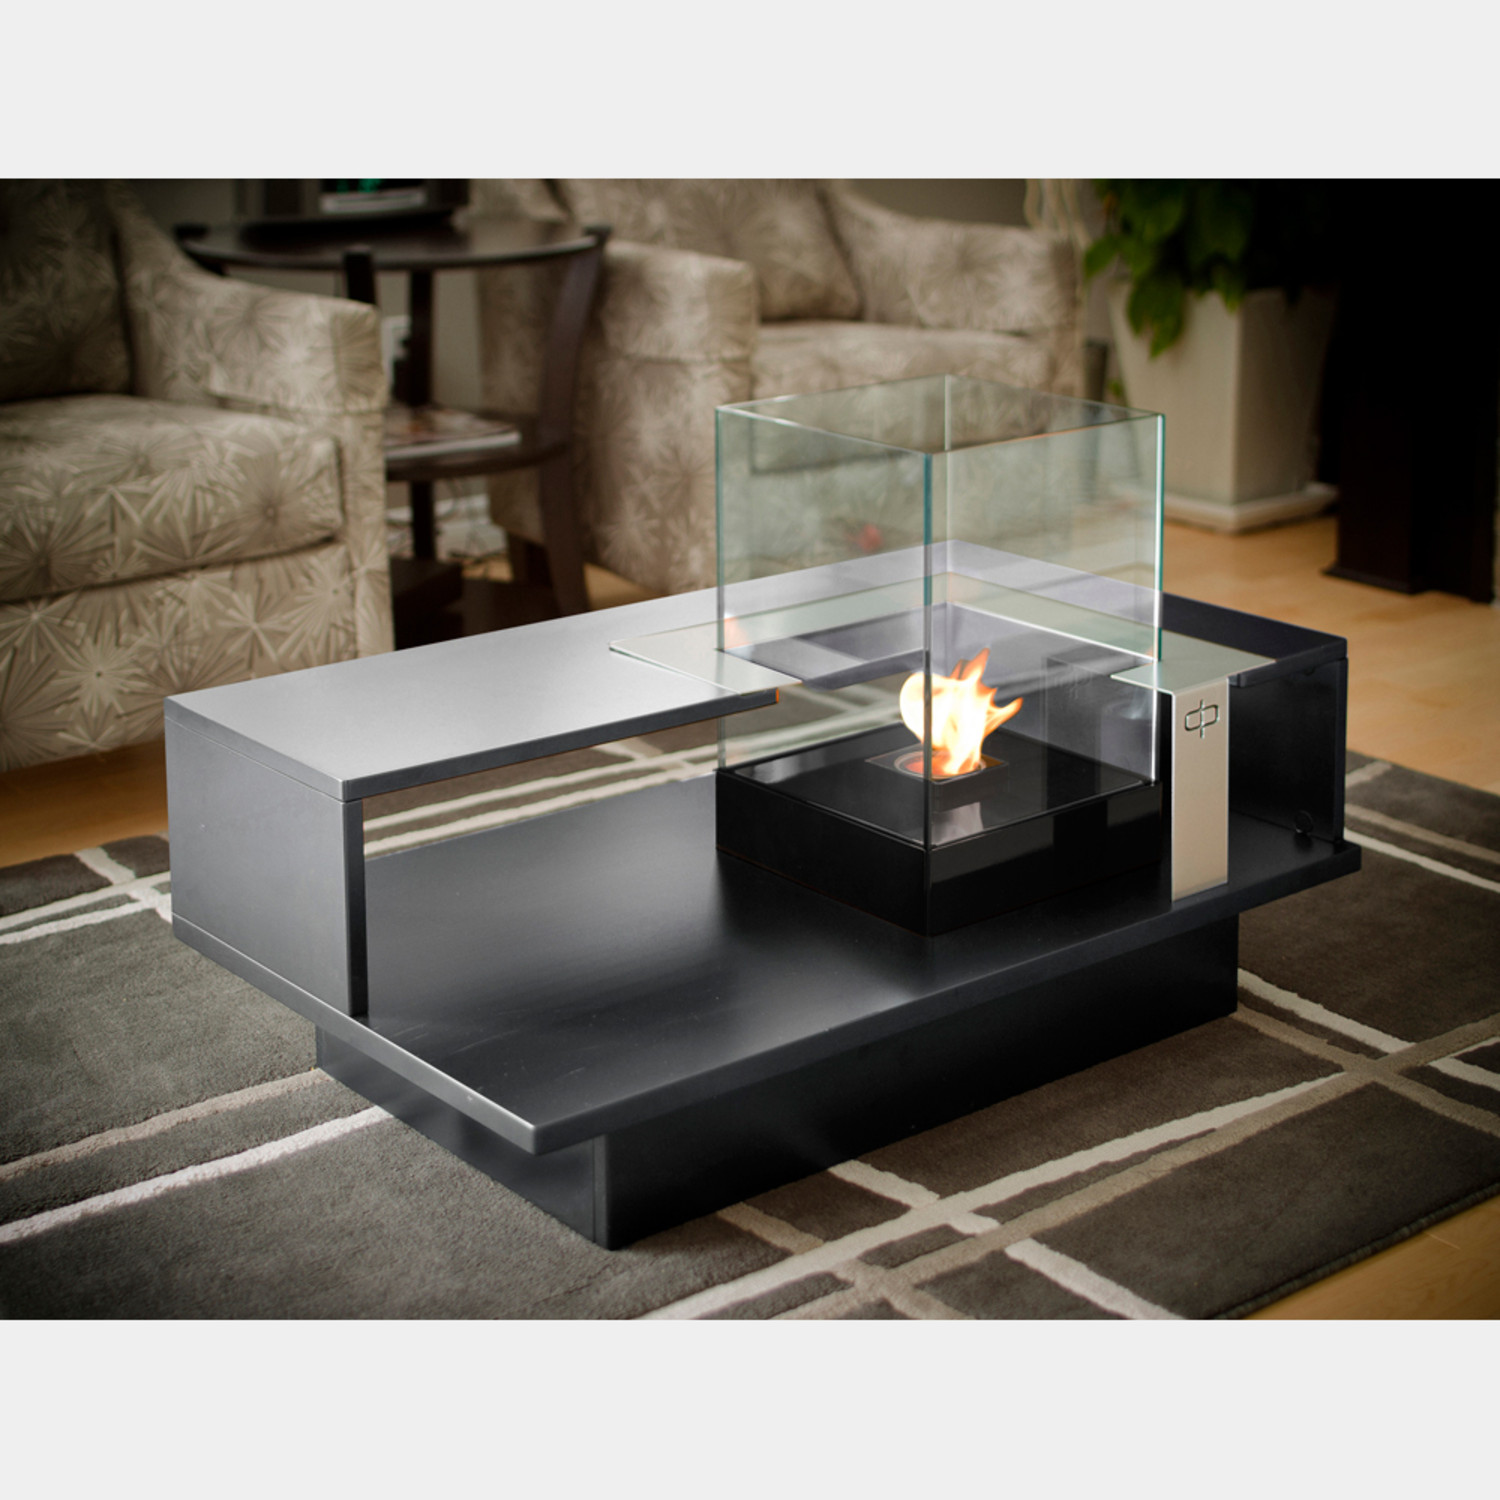 Level Compact Coffee Table With Fireburner (Black Textured